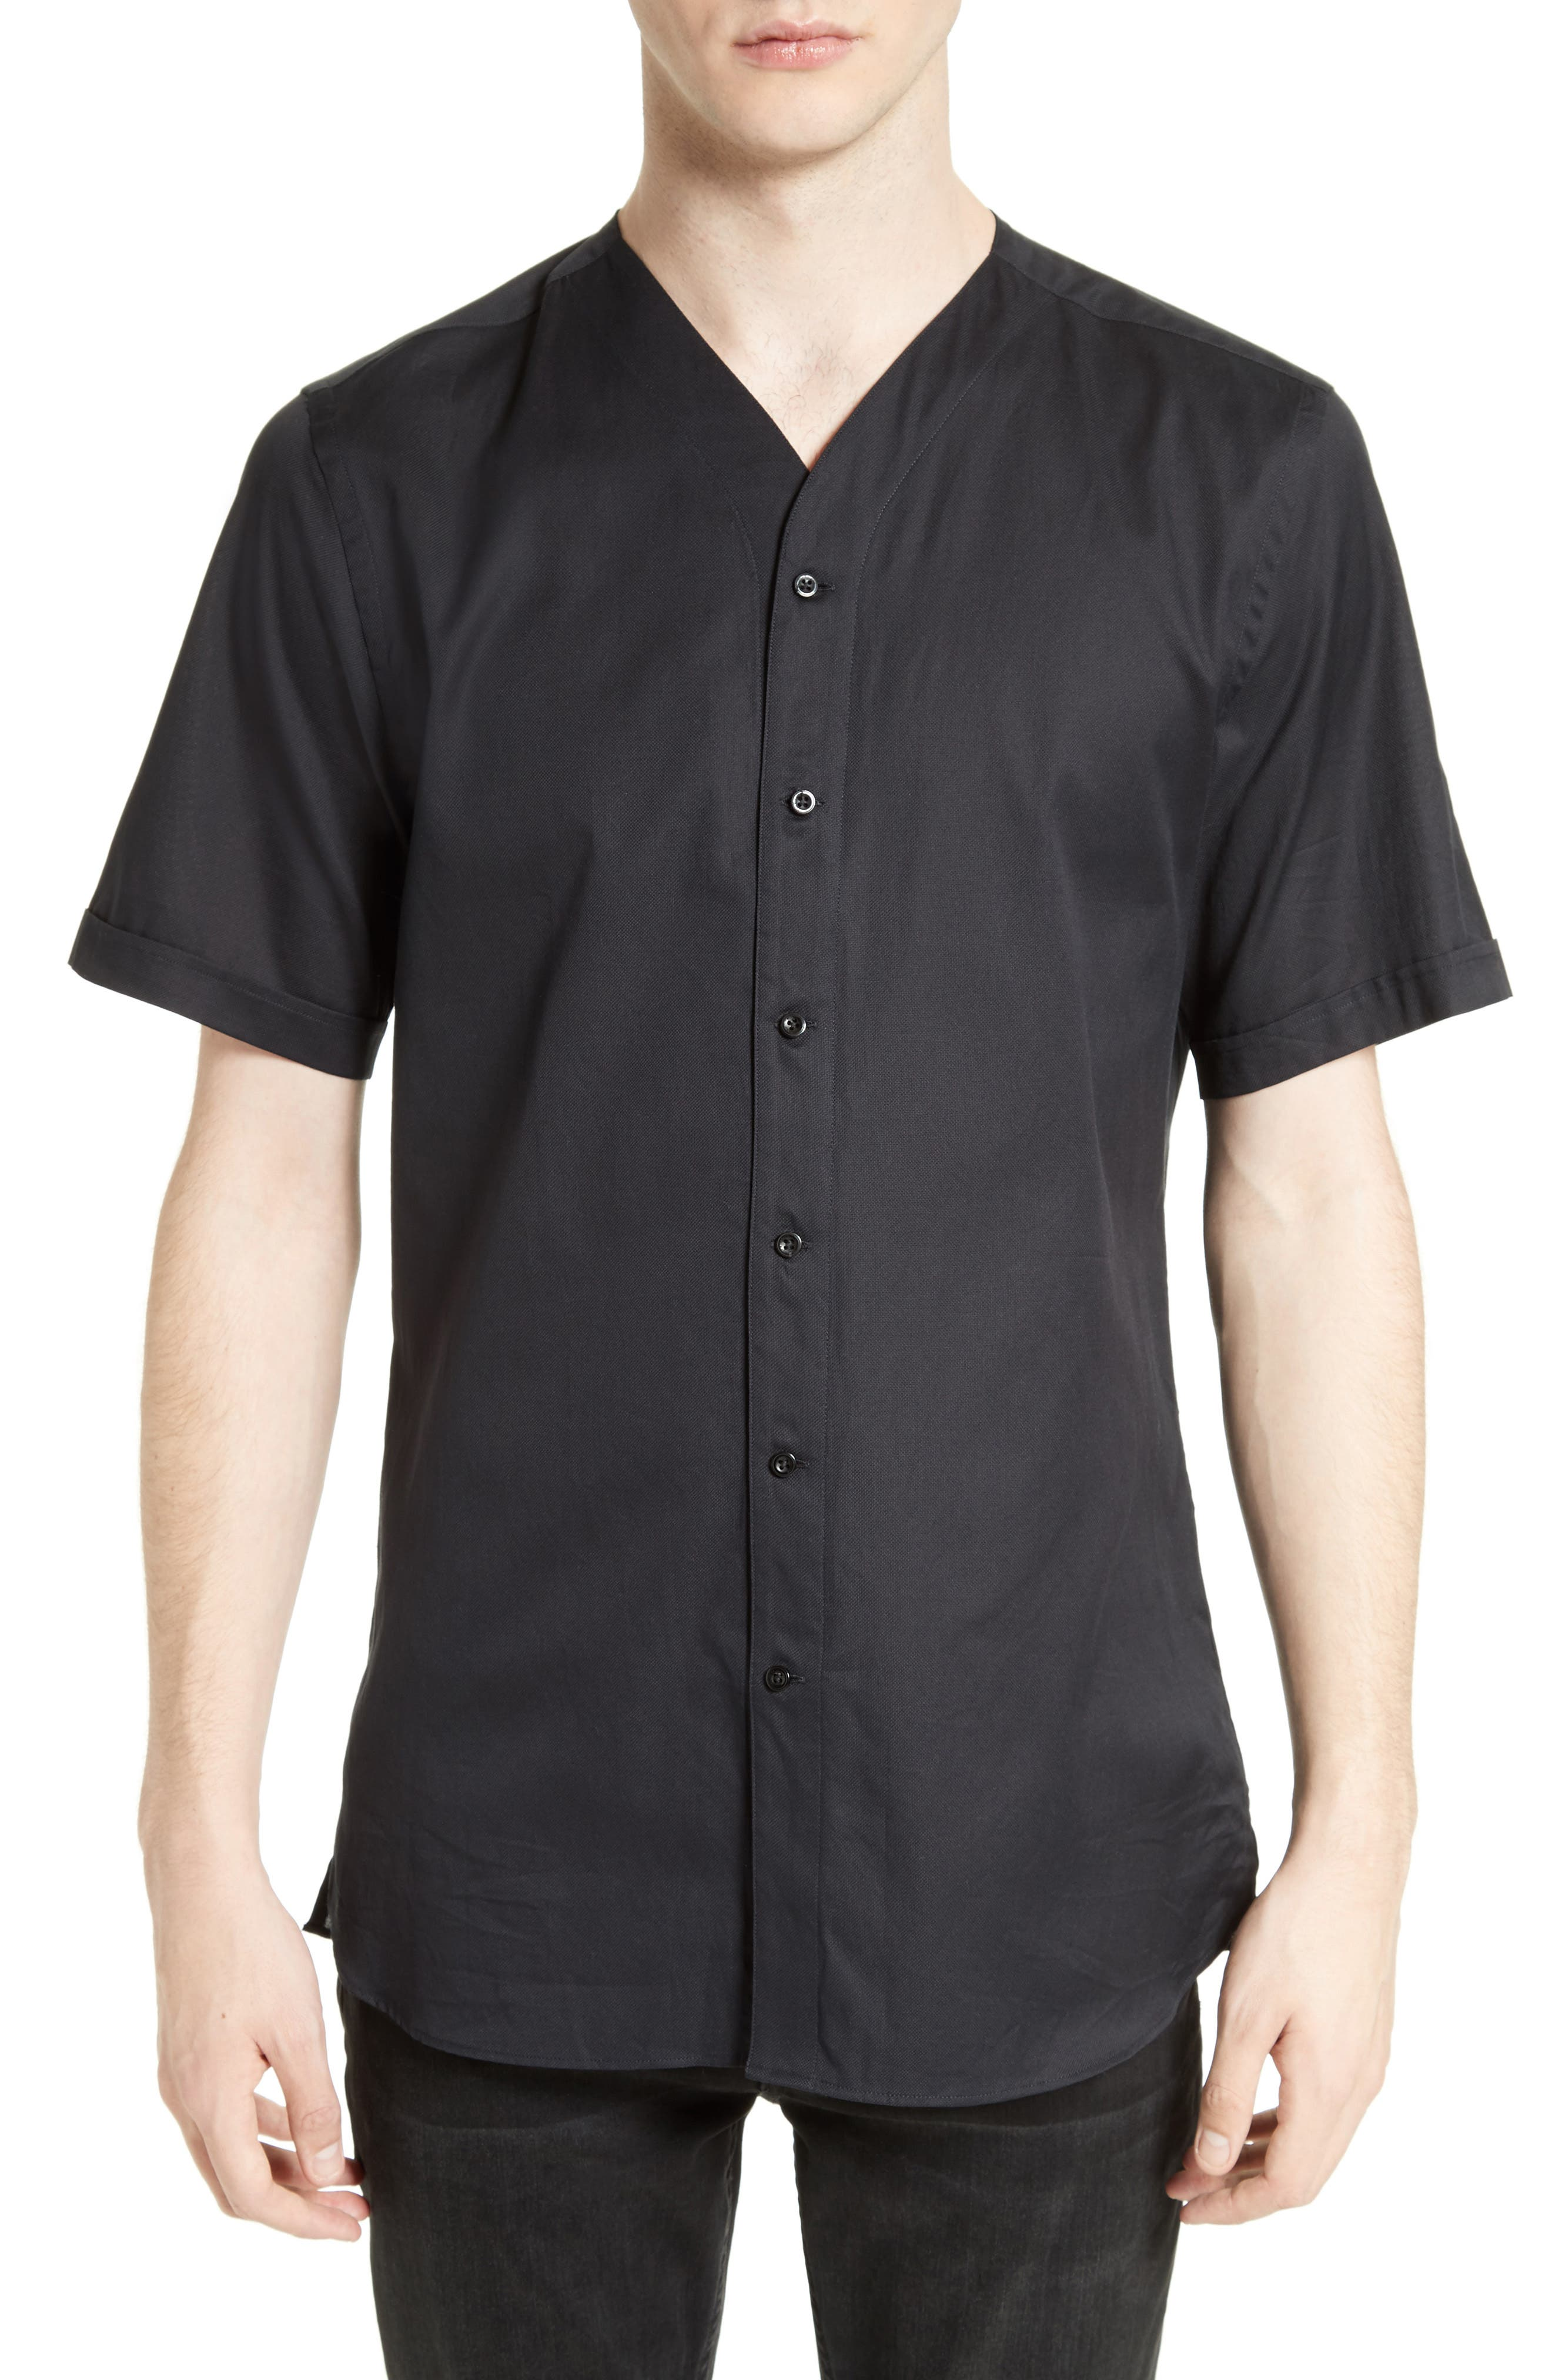 The Kooples Classic Cotton Woven V-Neck Shirt